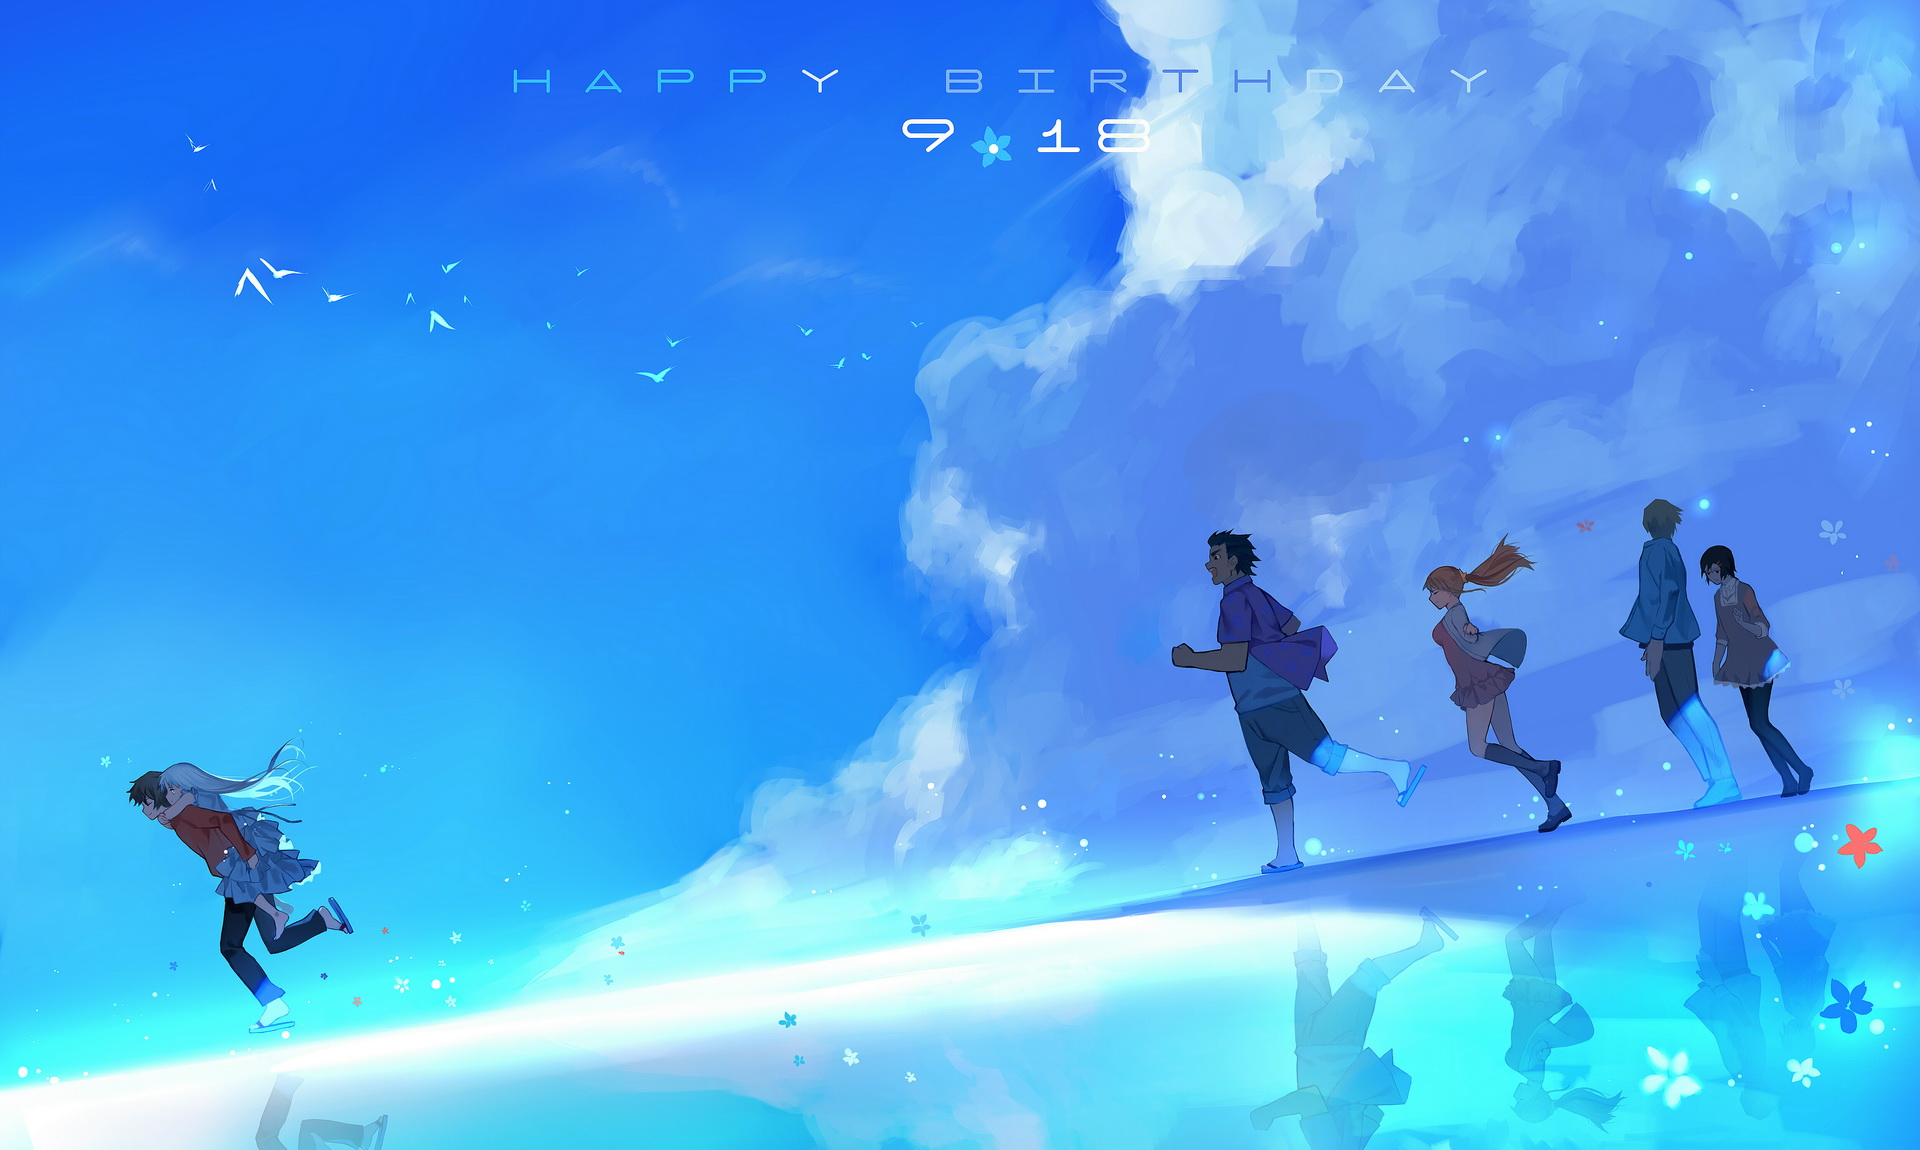 19 Anohana HD Wallpapers   Backgrounds - Wallpaper Abyss